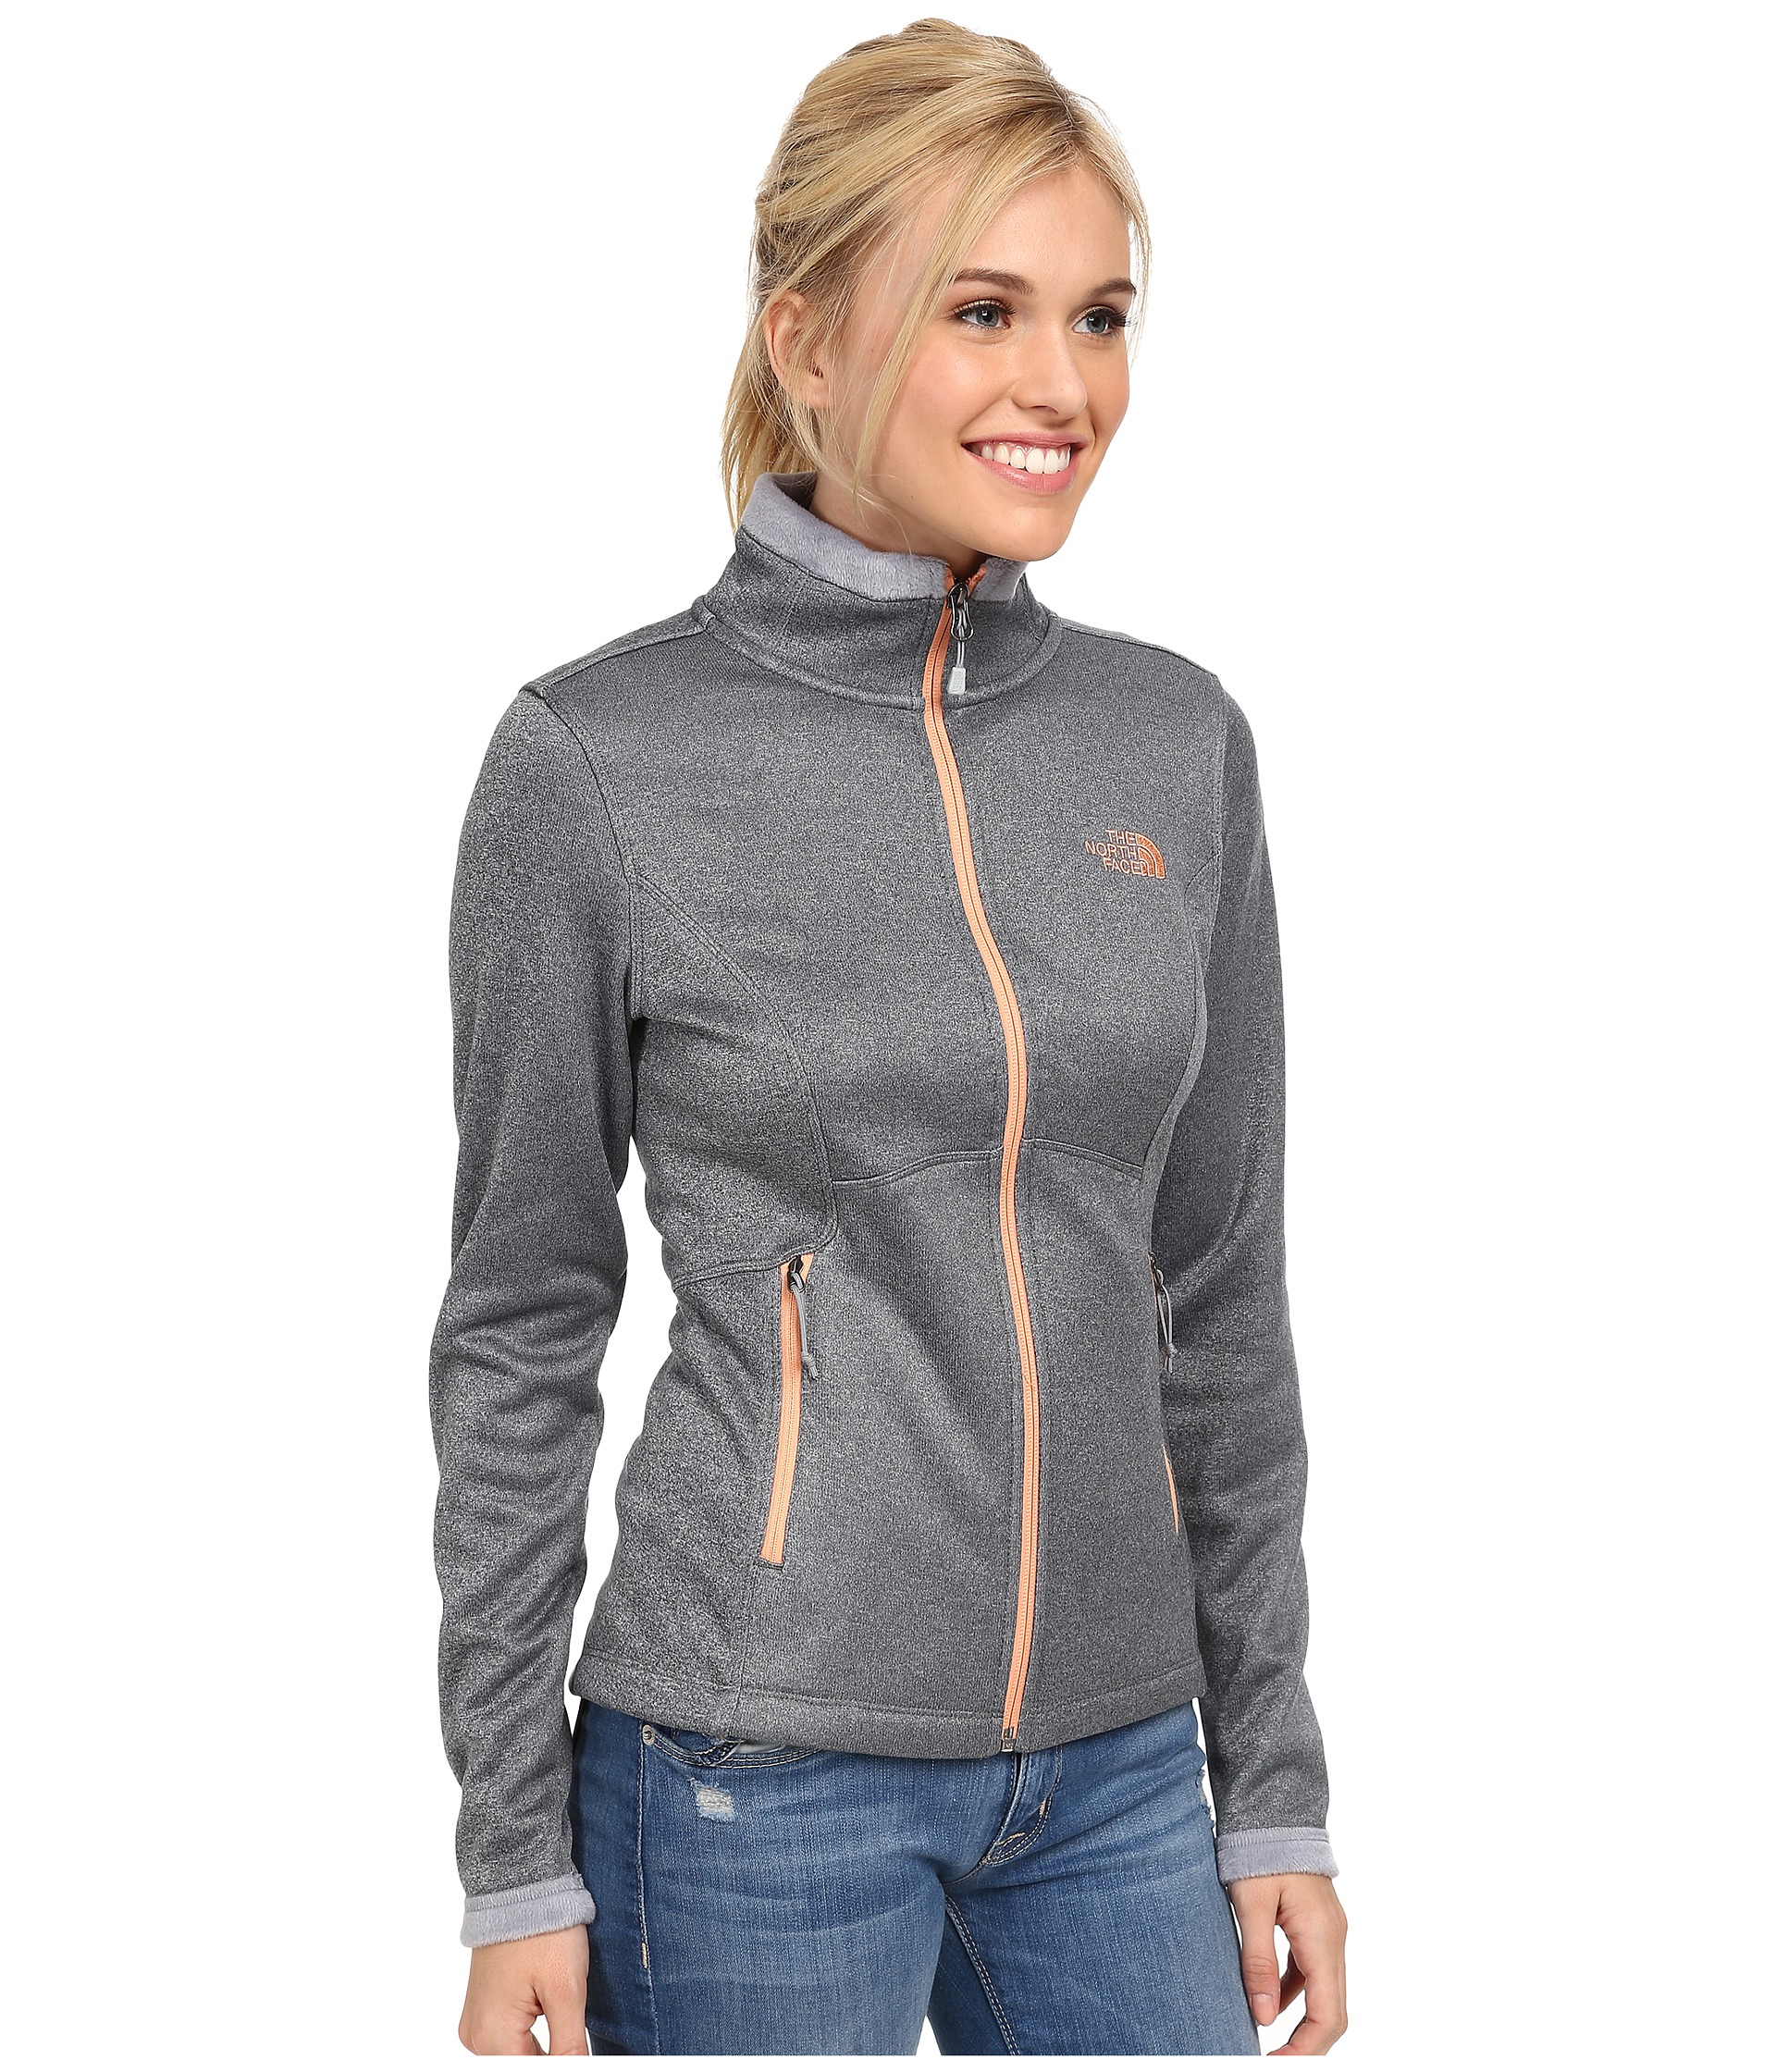 668e23e8c435 ... cheap lyst the north face agave jacket in gray b50e9 f8268